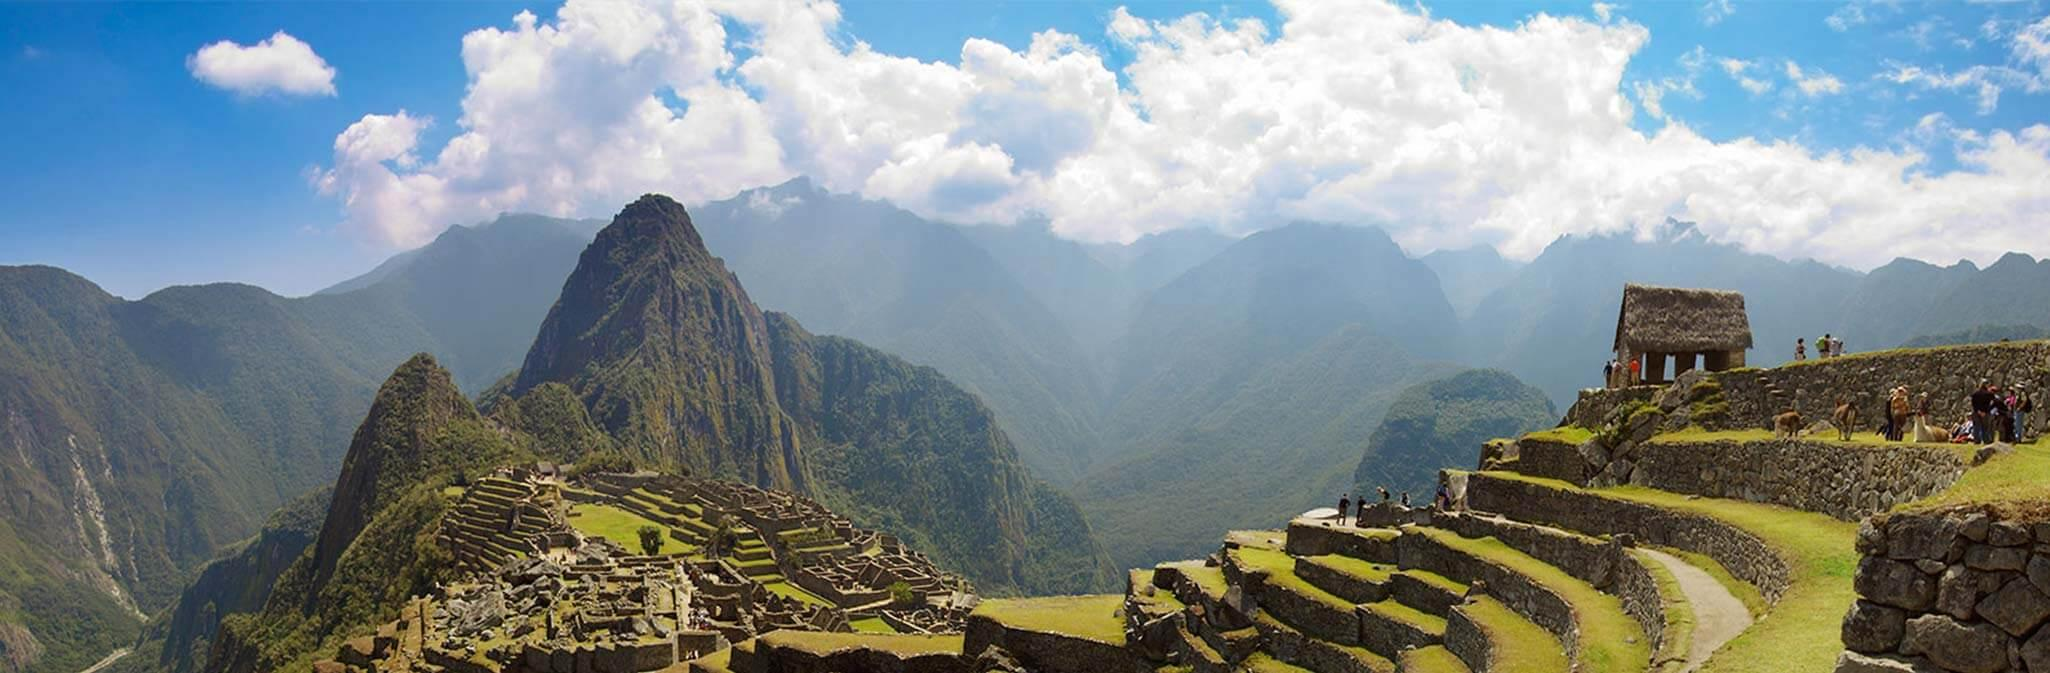 Machu Picchu, points of interest in Peru